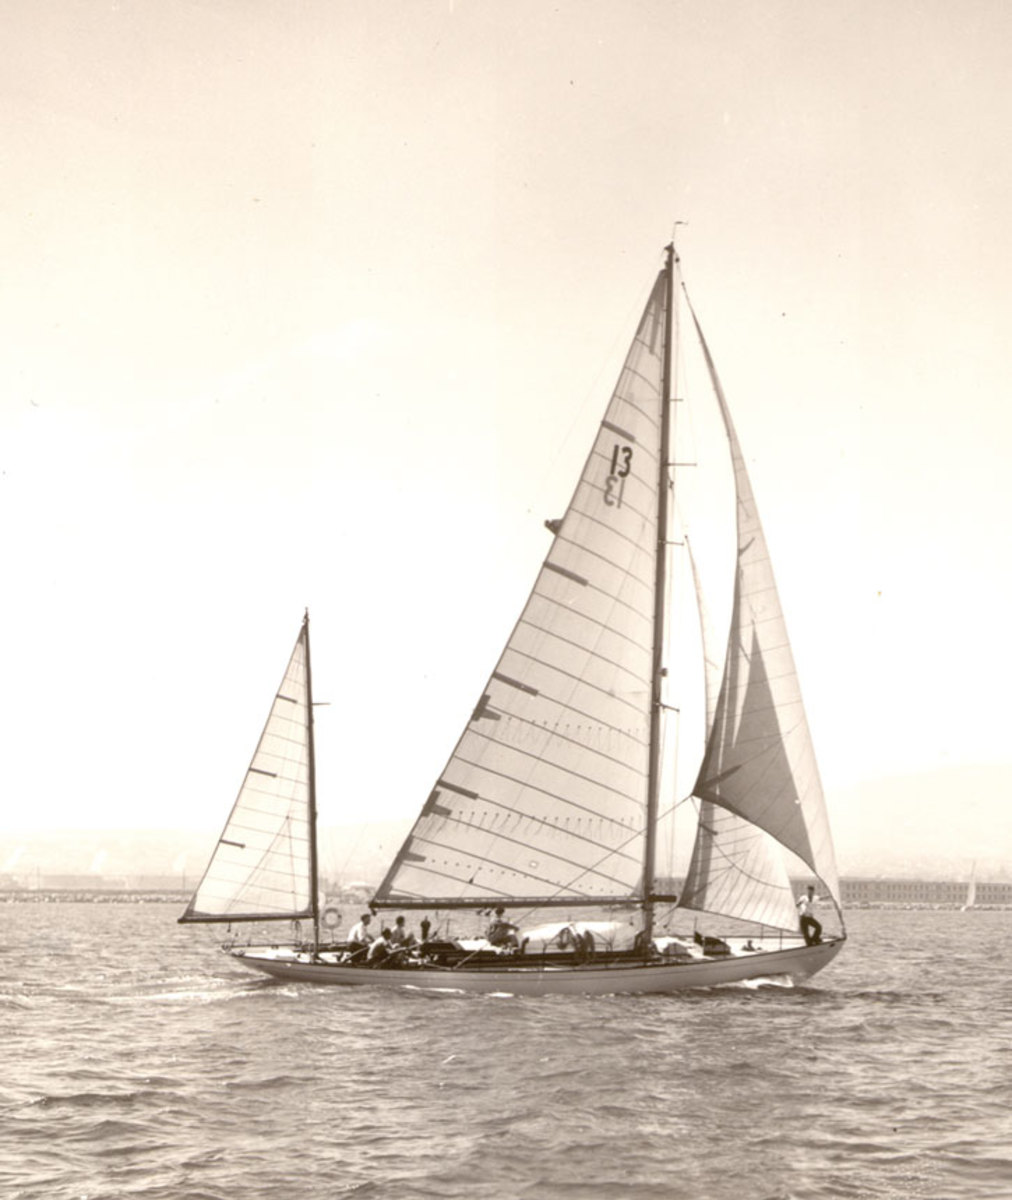 Dorade is one of the classics produced by the firm.